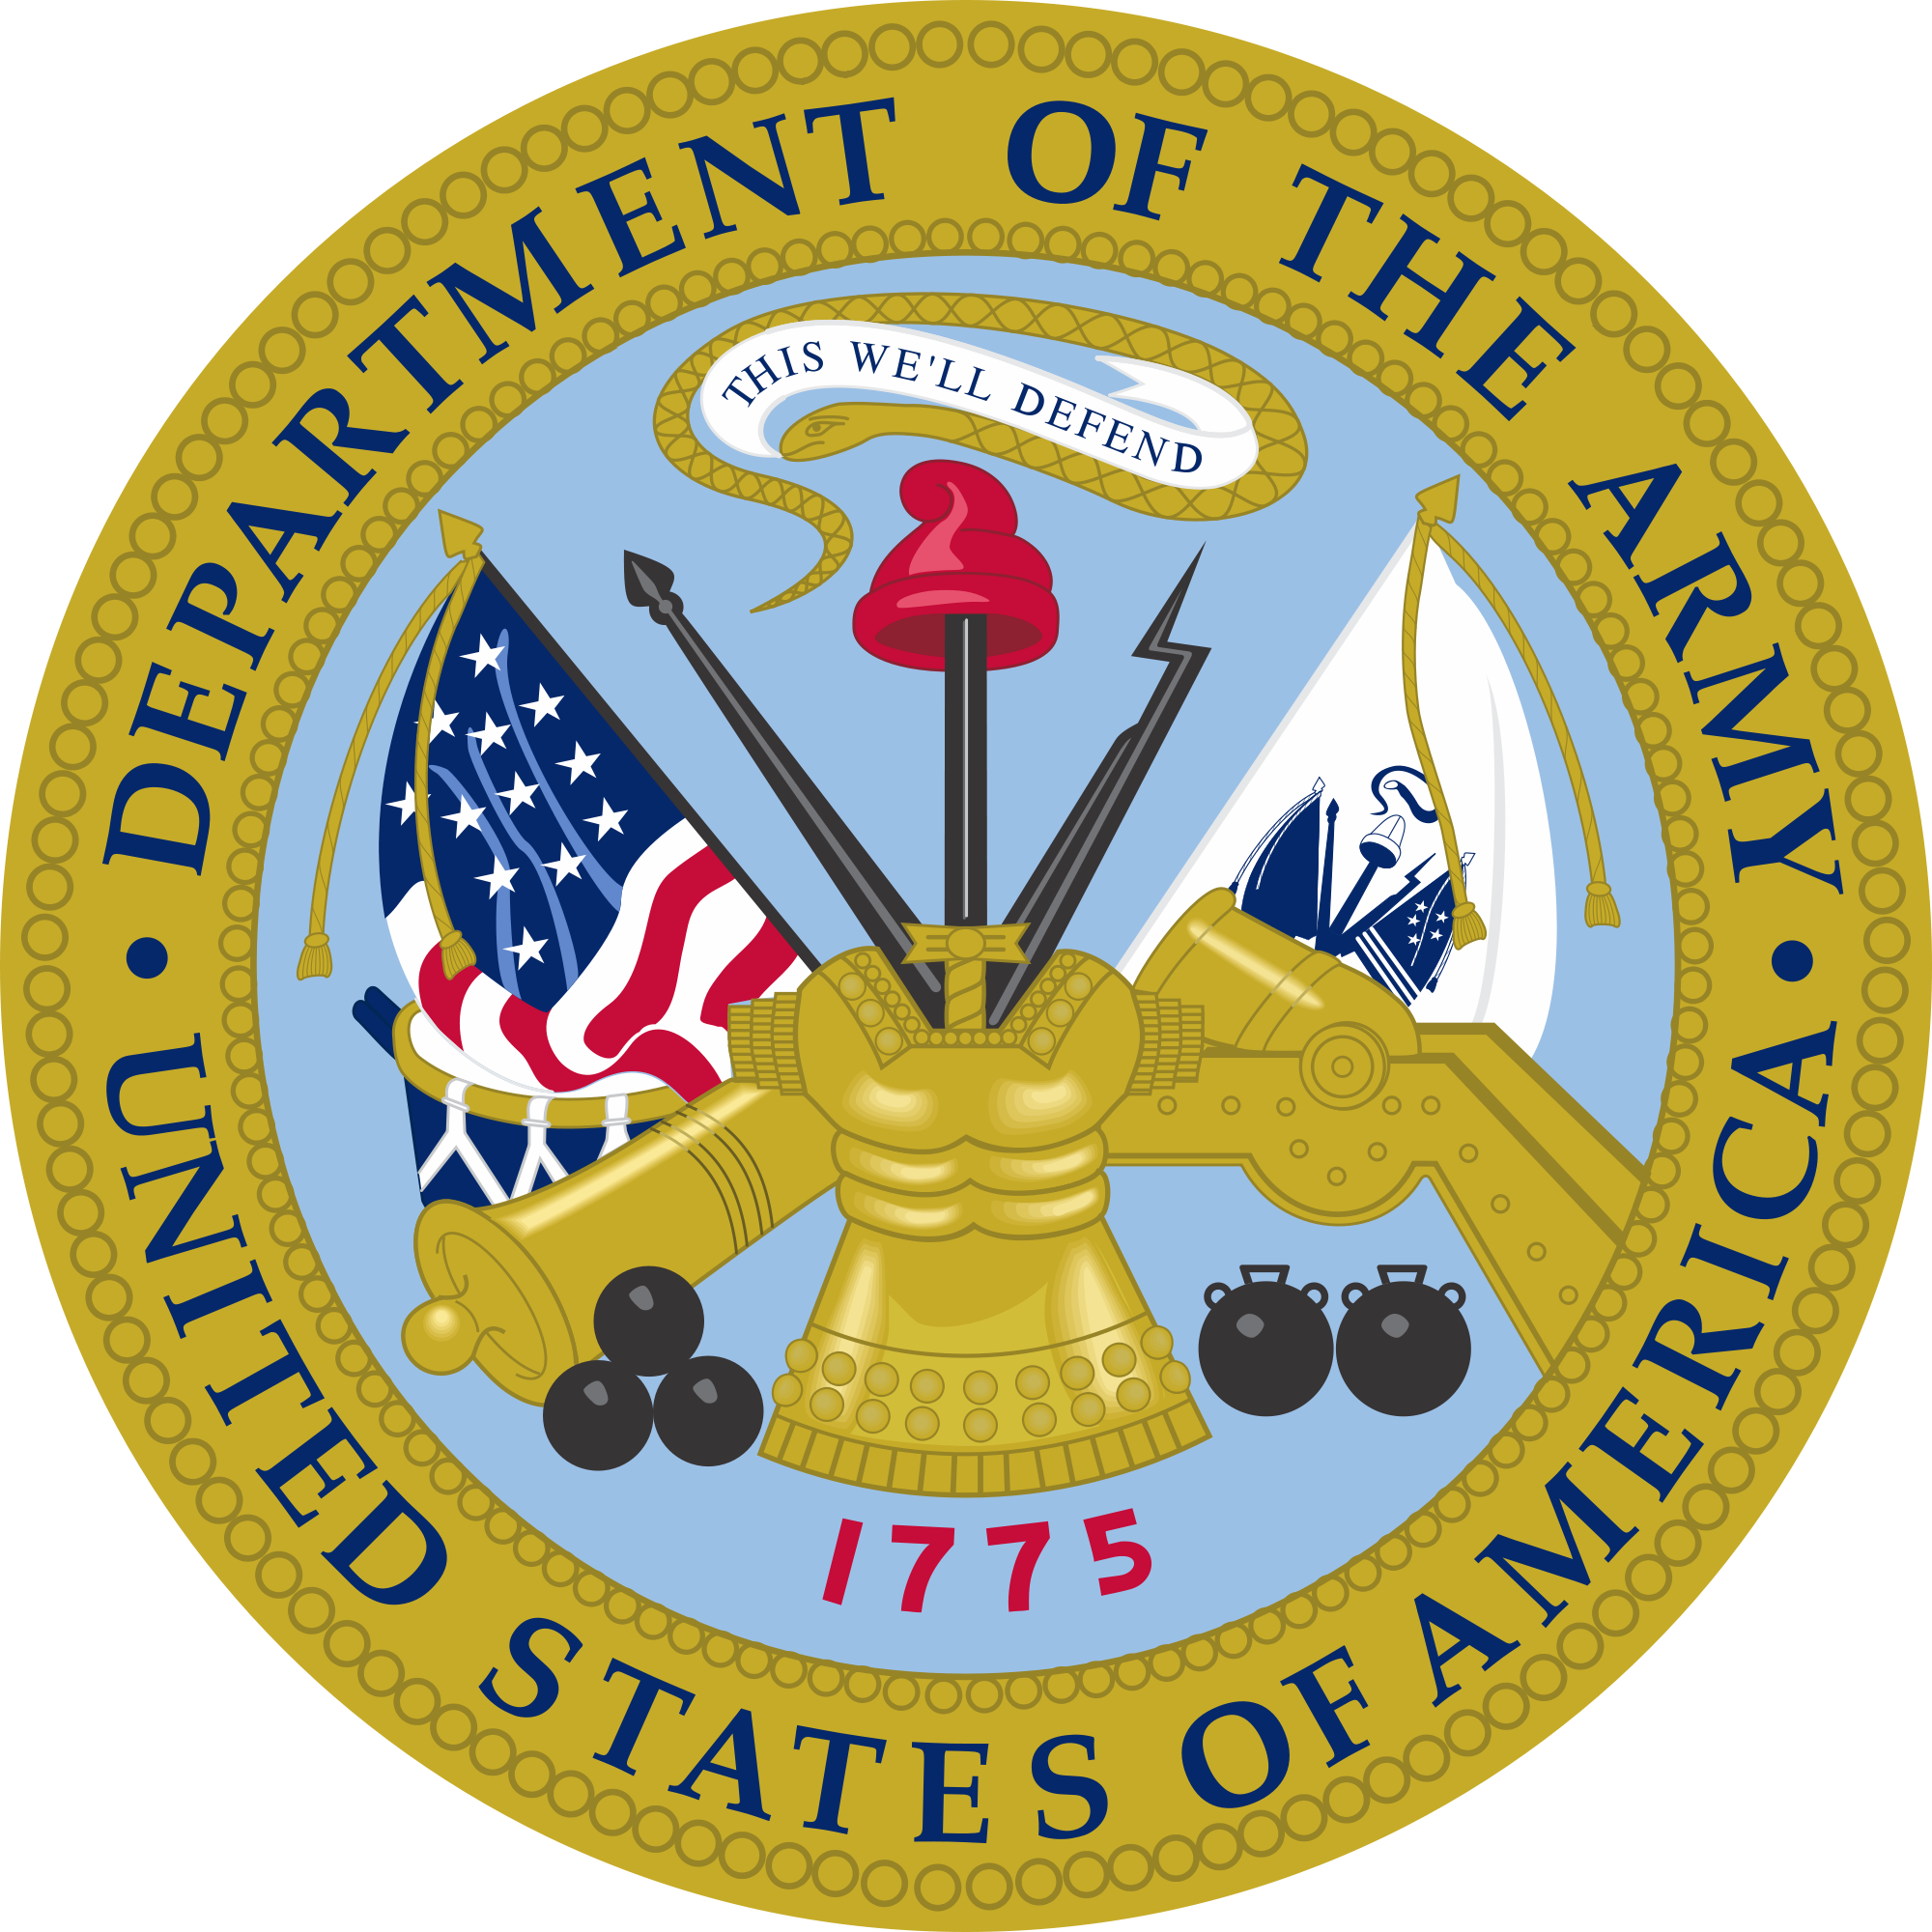 Clipart us army map symbols vector freeuse library United States Army | Call of Duty Wiki | Fandom powered by Wikia vector freeuse library